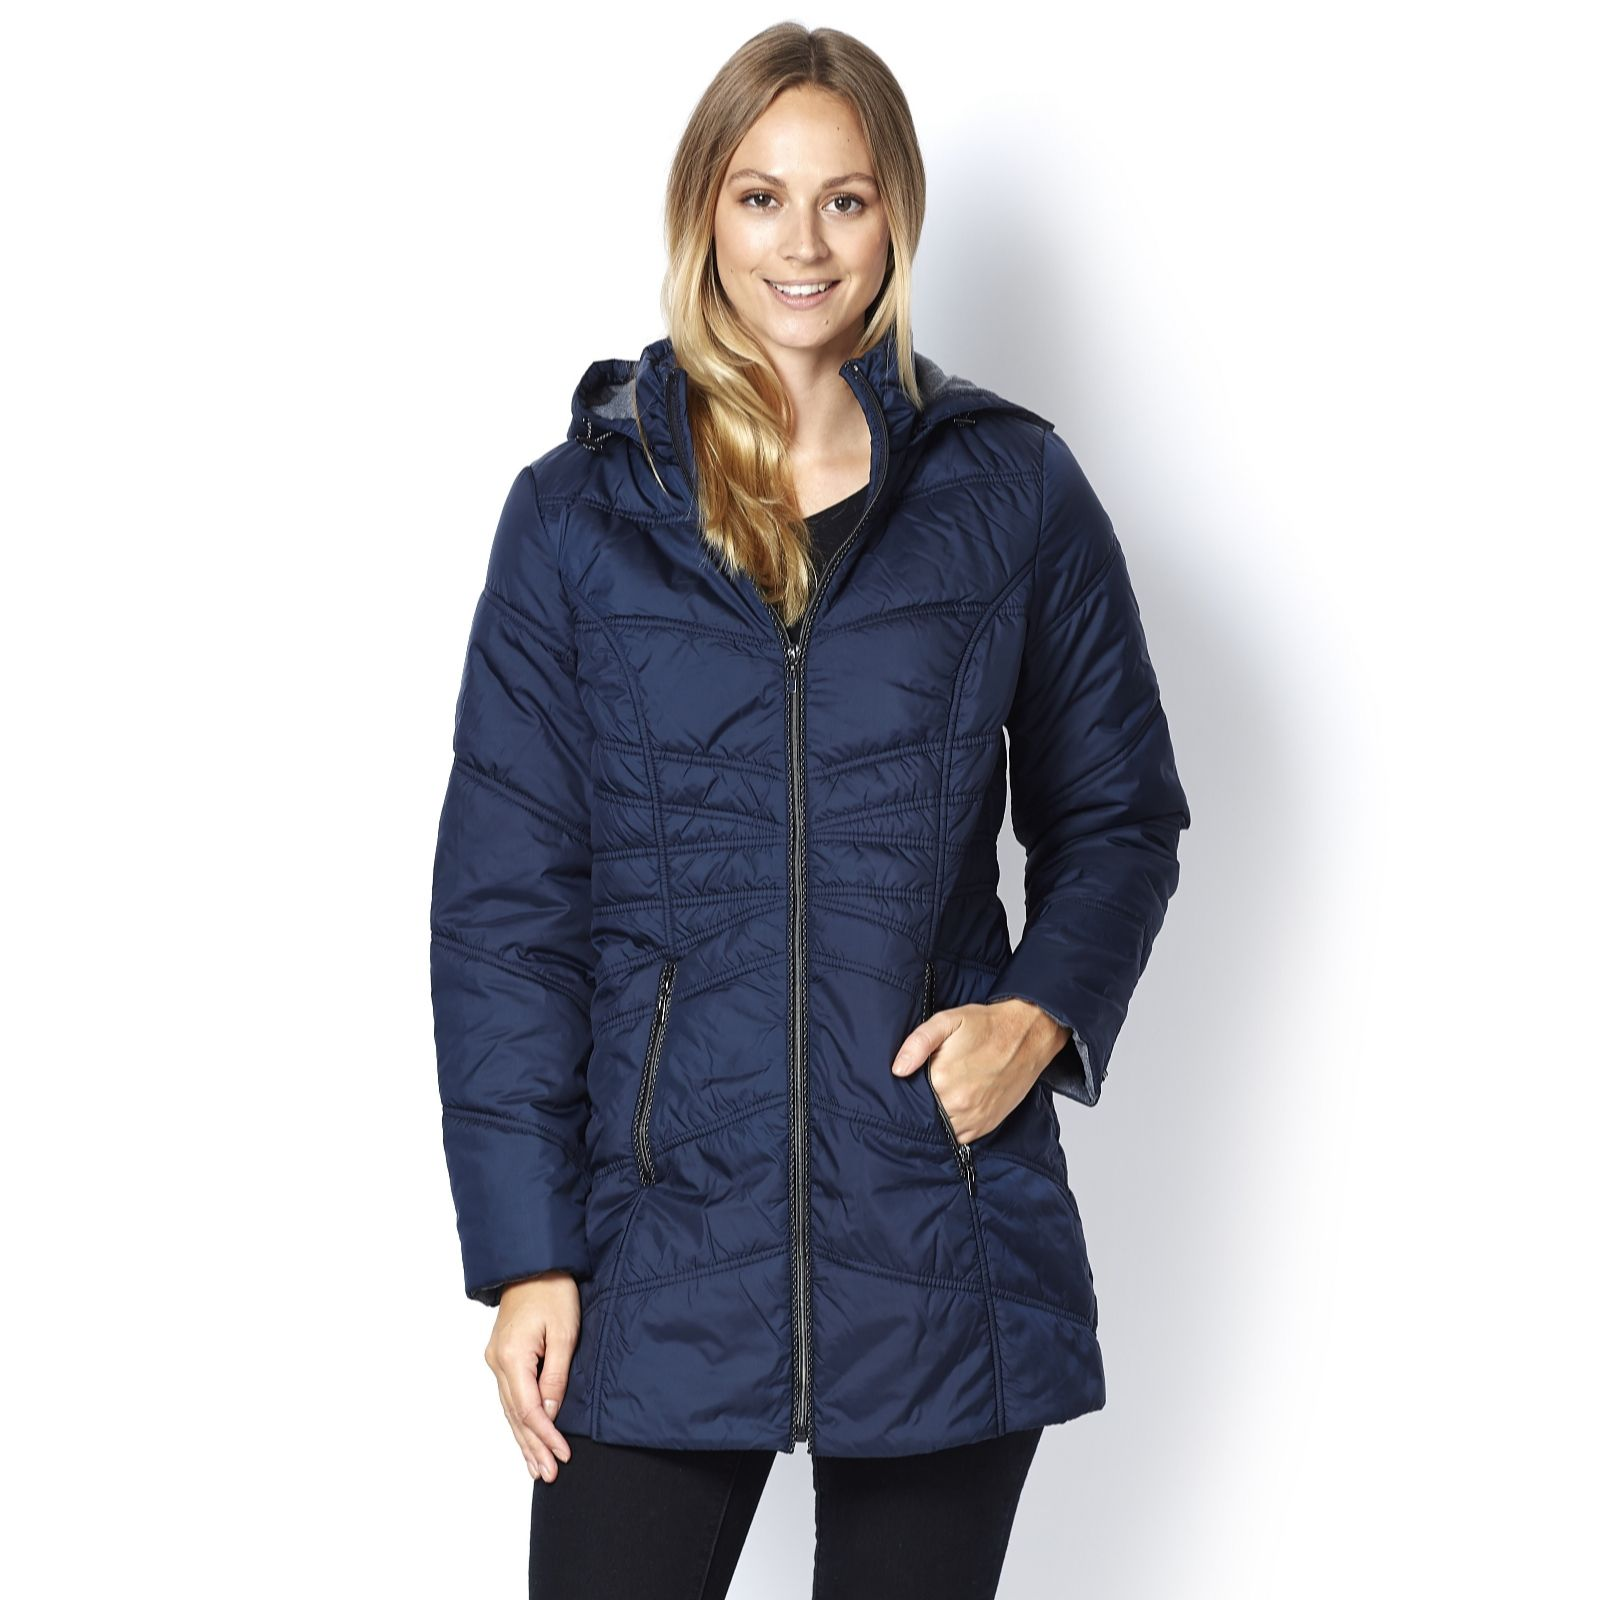 Mens quilted jacket sale uk - Centigrade Quilted Jacket With Zip Pocket Detail 161163